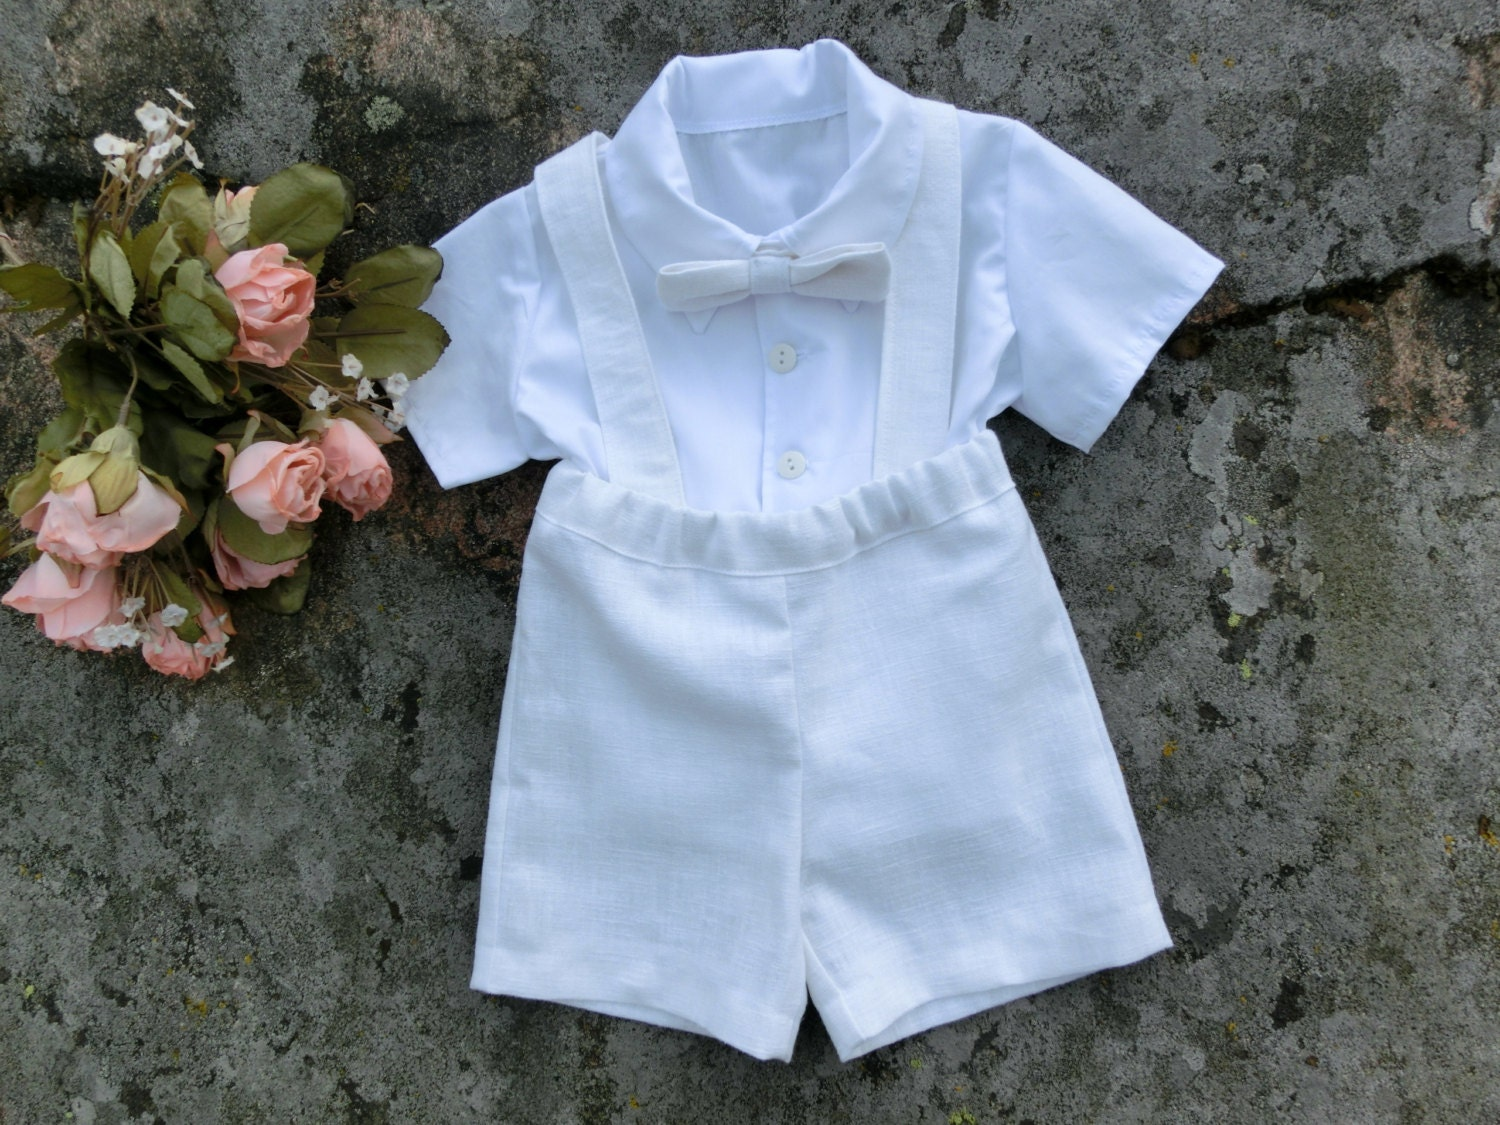 Boy baptism outfit. Baby christening outfit.Toddler boy